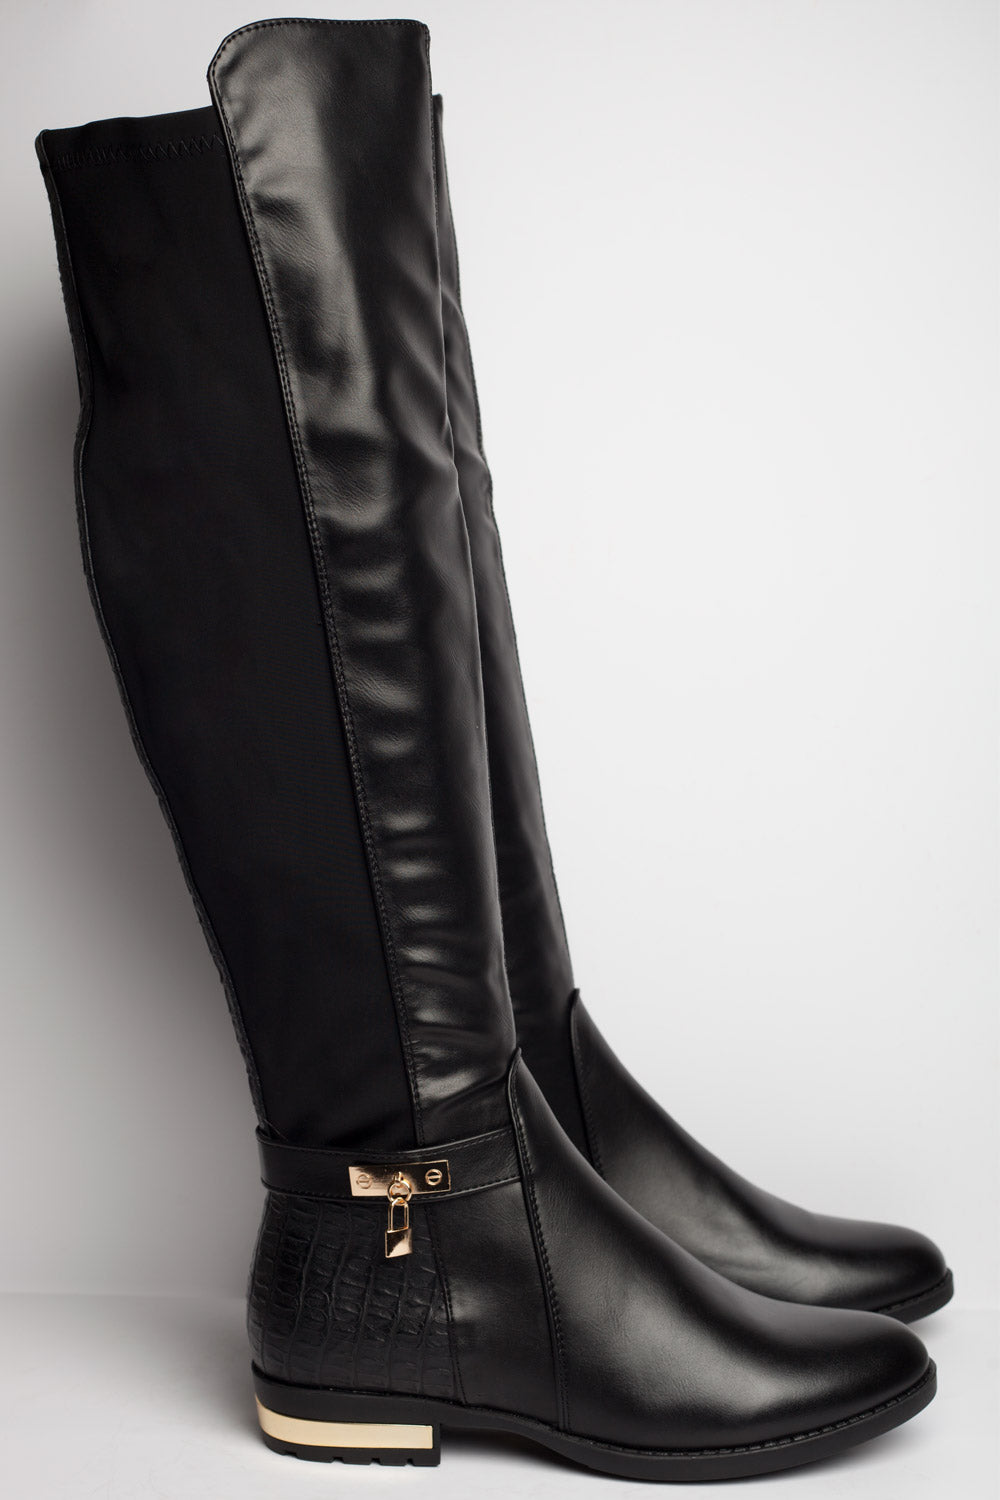 womens knee high boots black